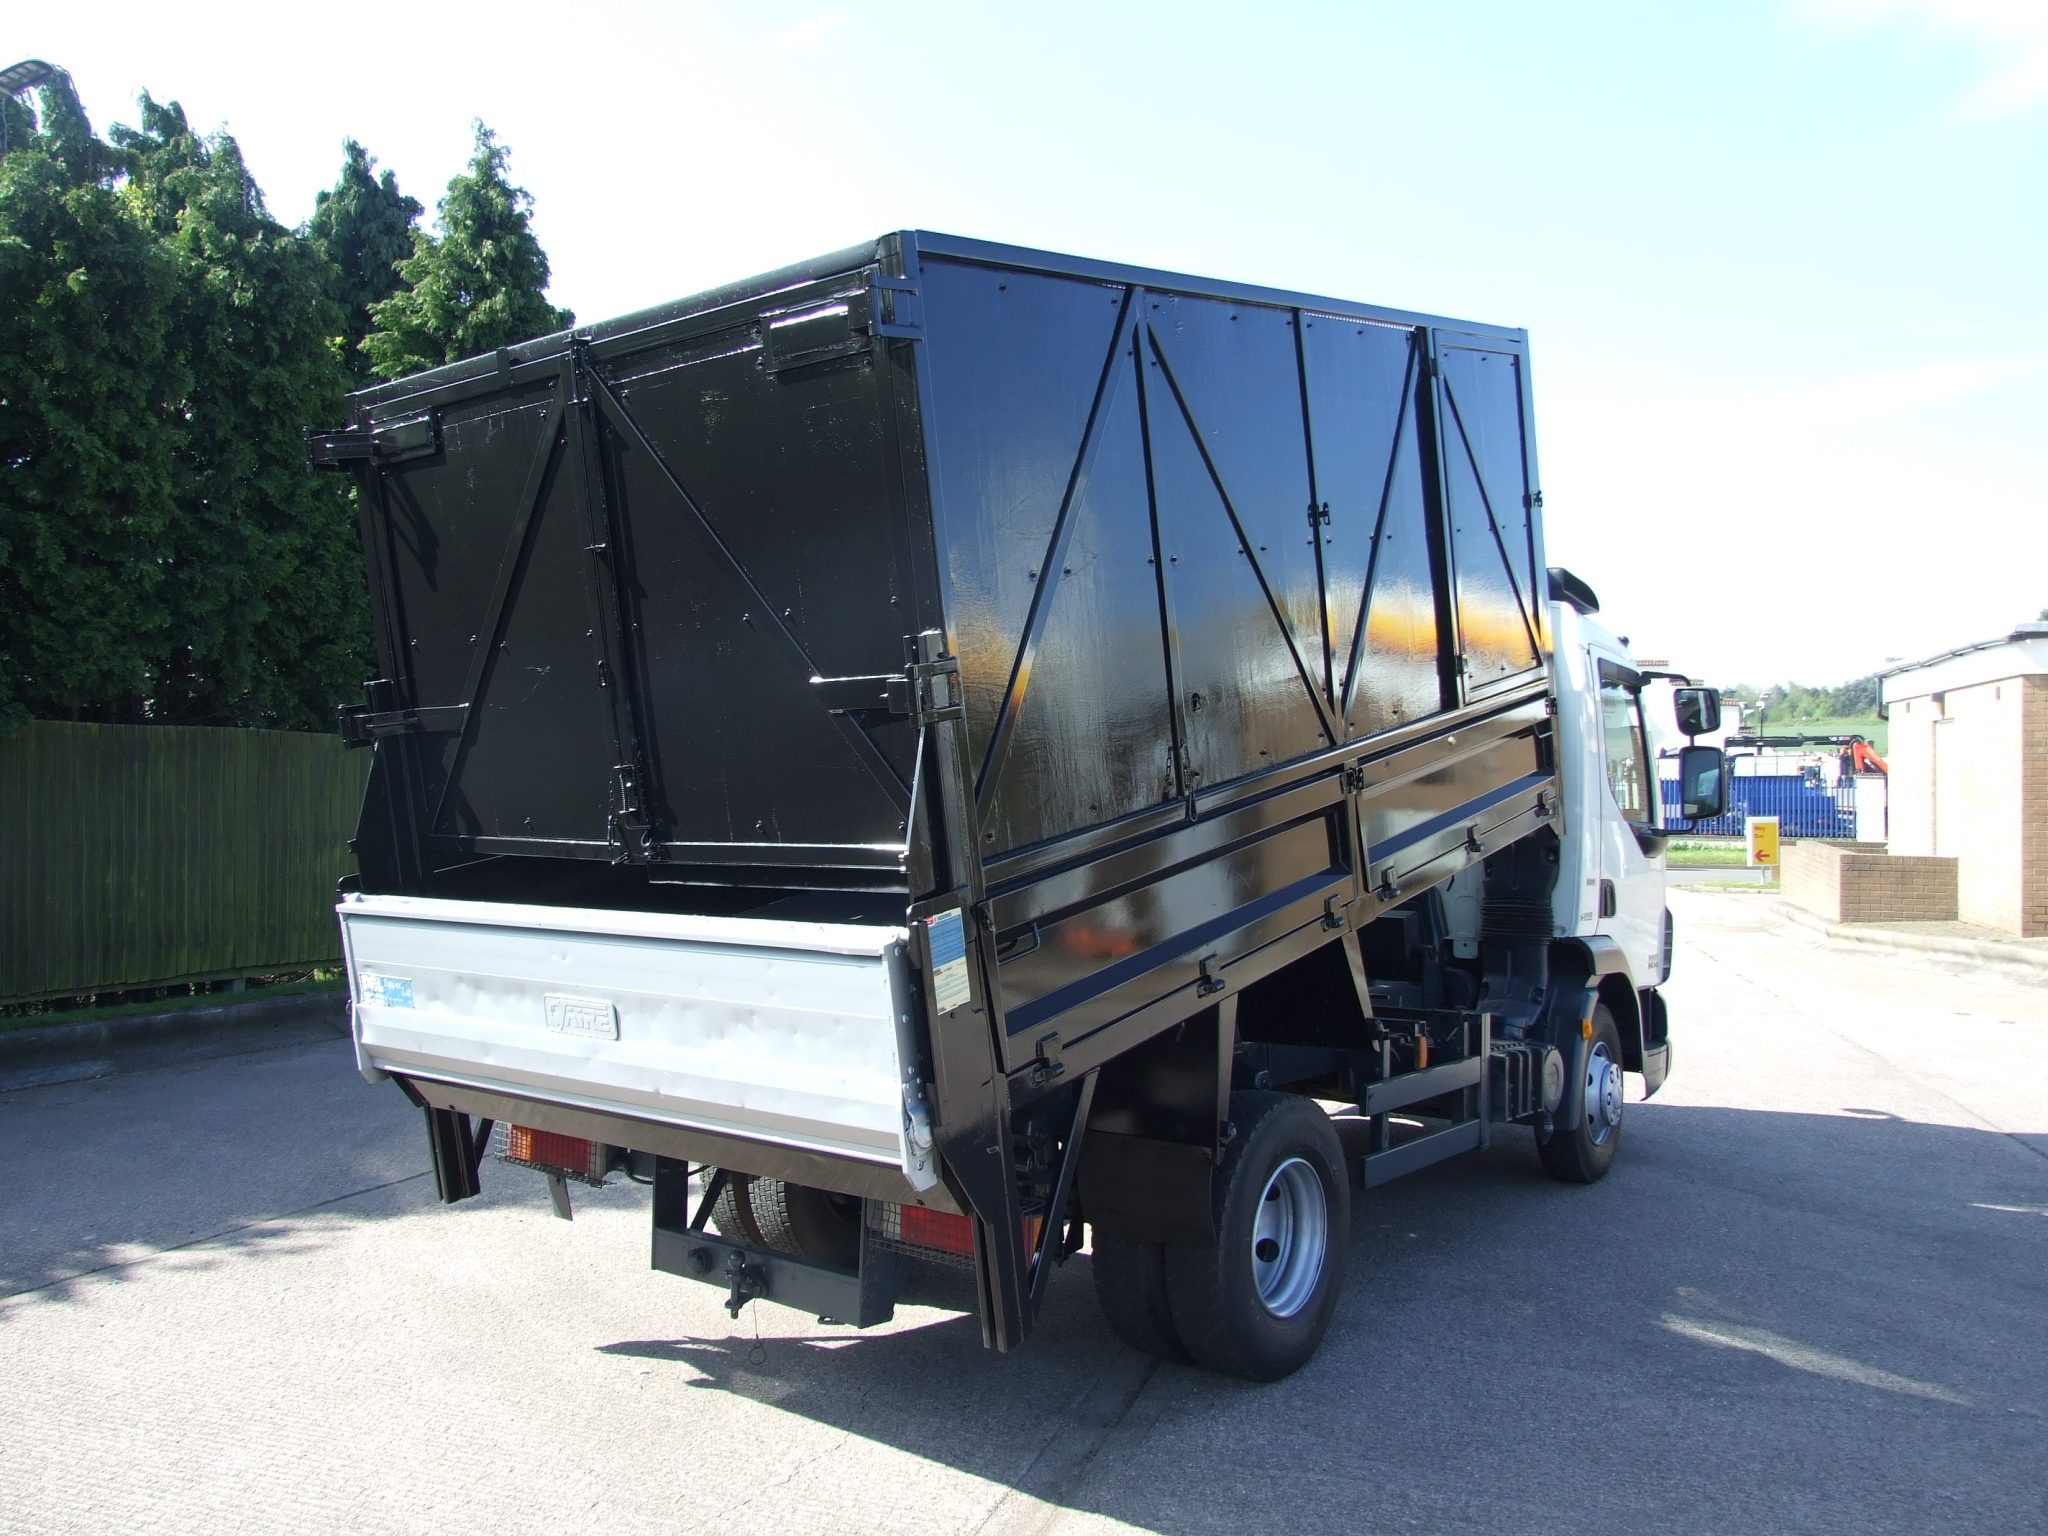 Mercedes Benz Of West Chester >> EXAMPLE OF A CAGED TIPPER - Cromwell Trucks